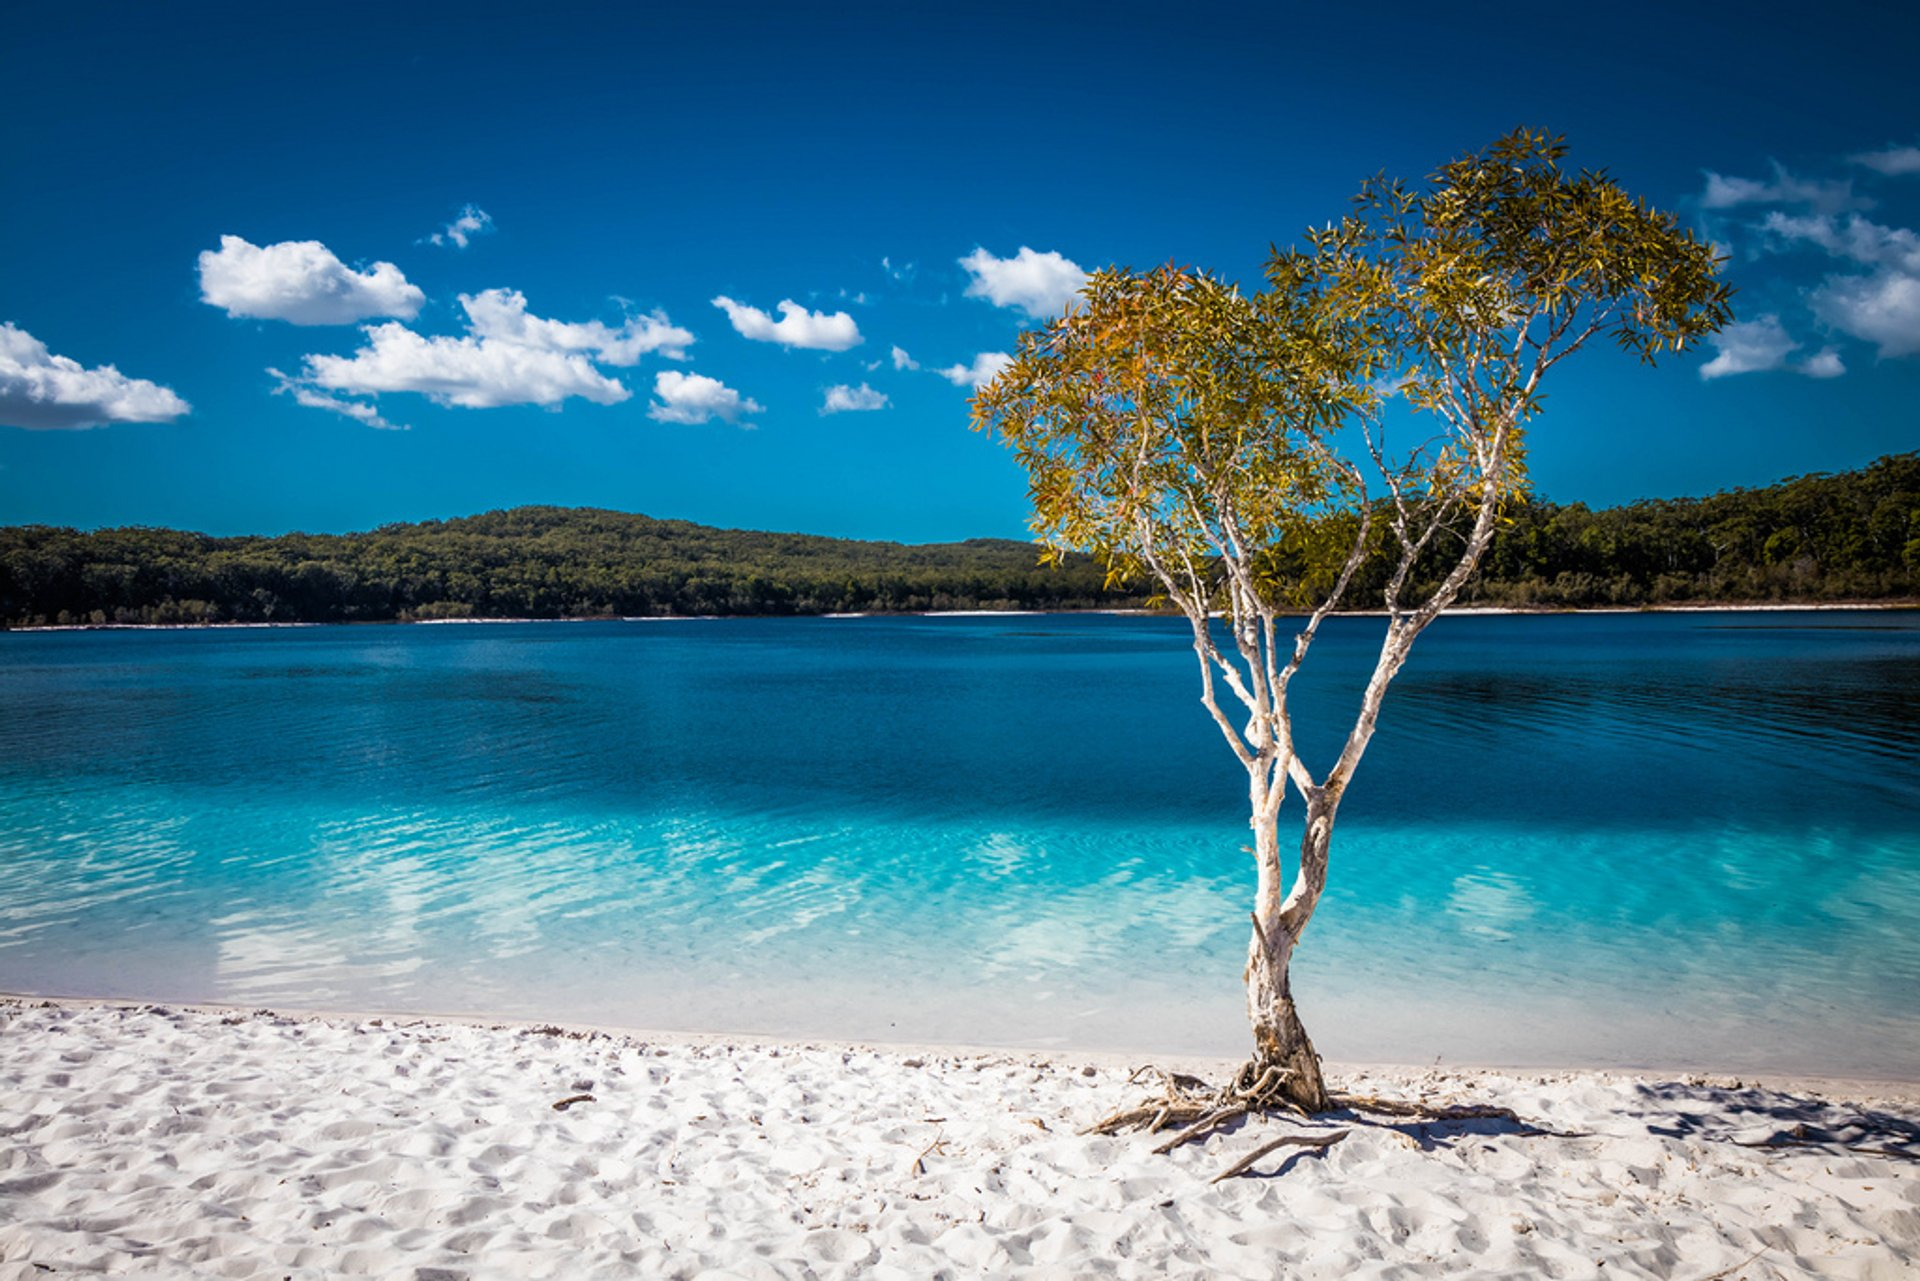 Lake McKenzie (Boorangoora) in Australia - Best Time